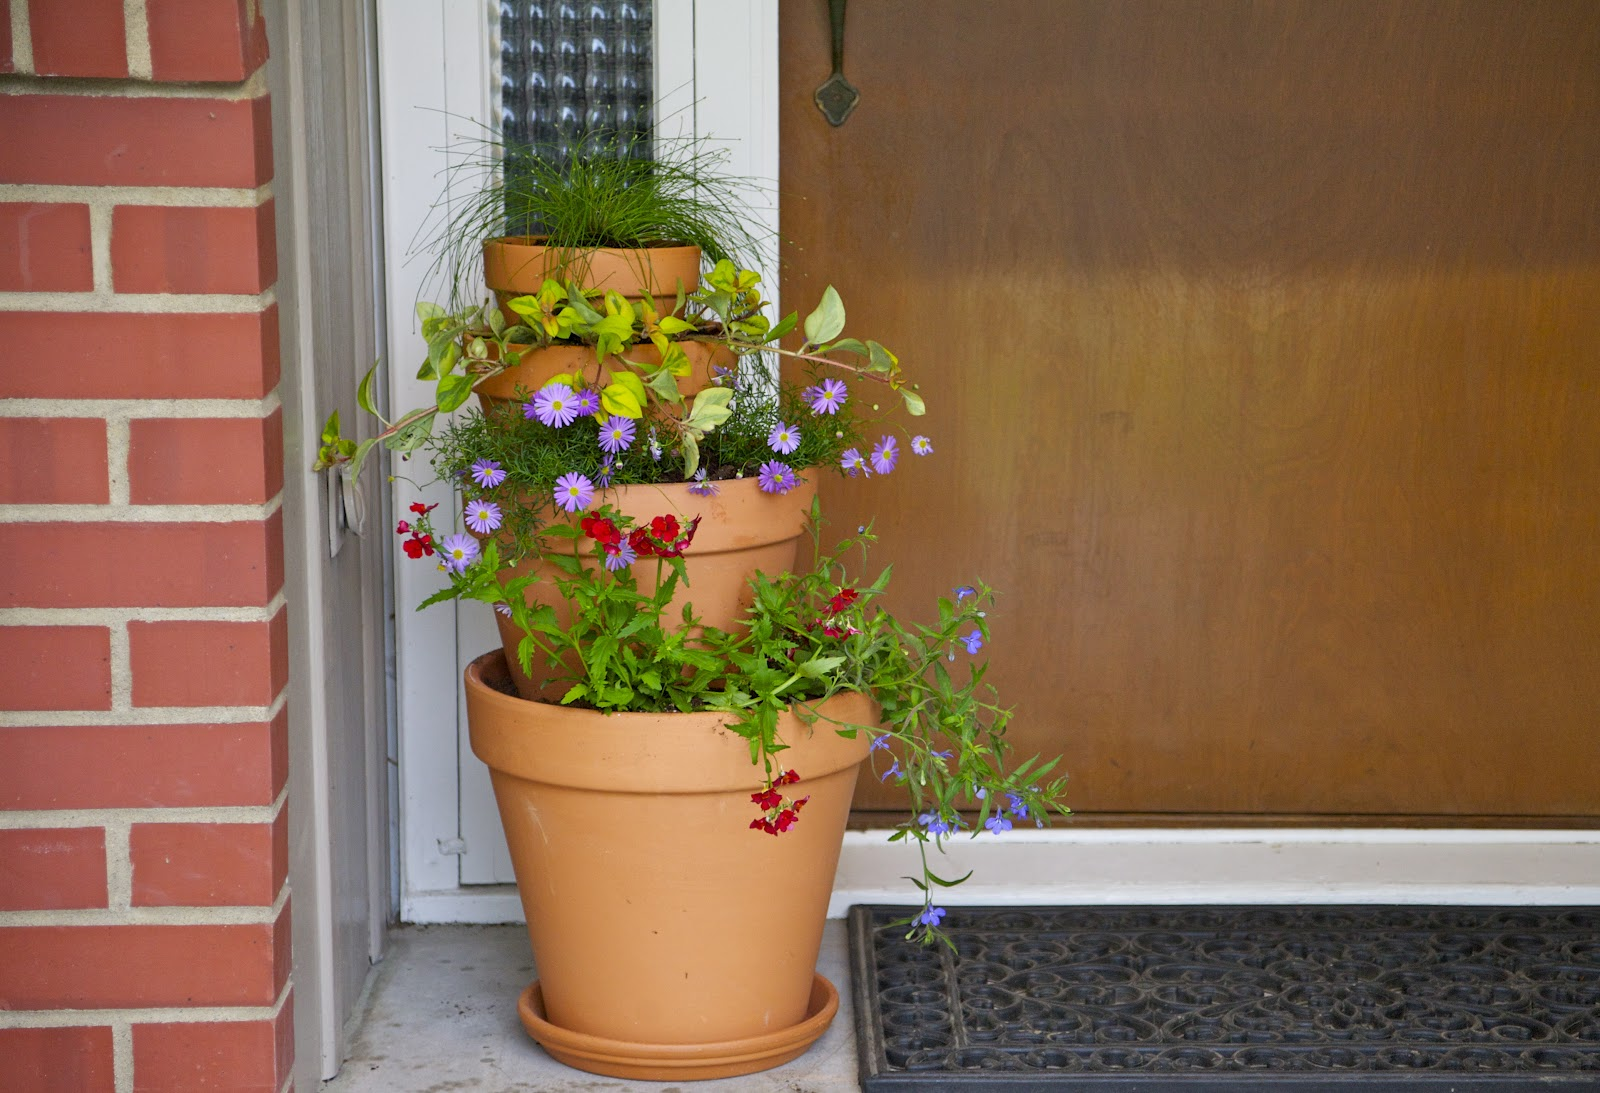 Three Tier Flower Pots Dwell Ing Noun Tiered Flower Pots